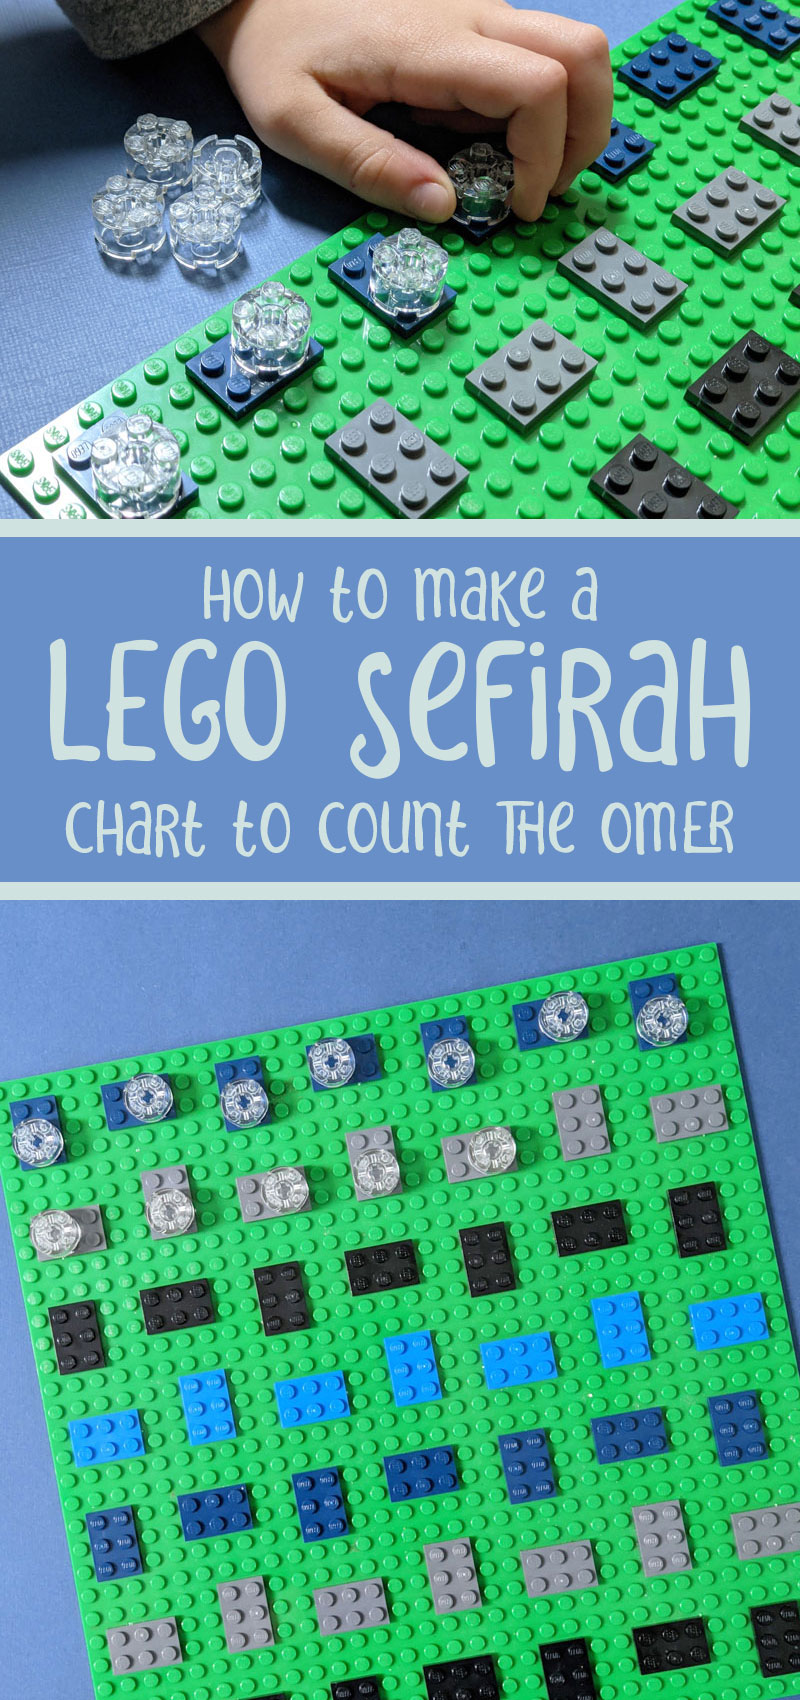 Make a LEGO sefirah chart -a fantastic idea for sefirat haomer and counting the omer! This Jewish lego idea is so easy and fun!